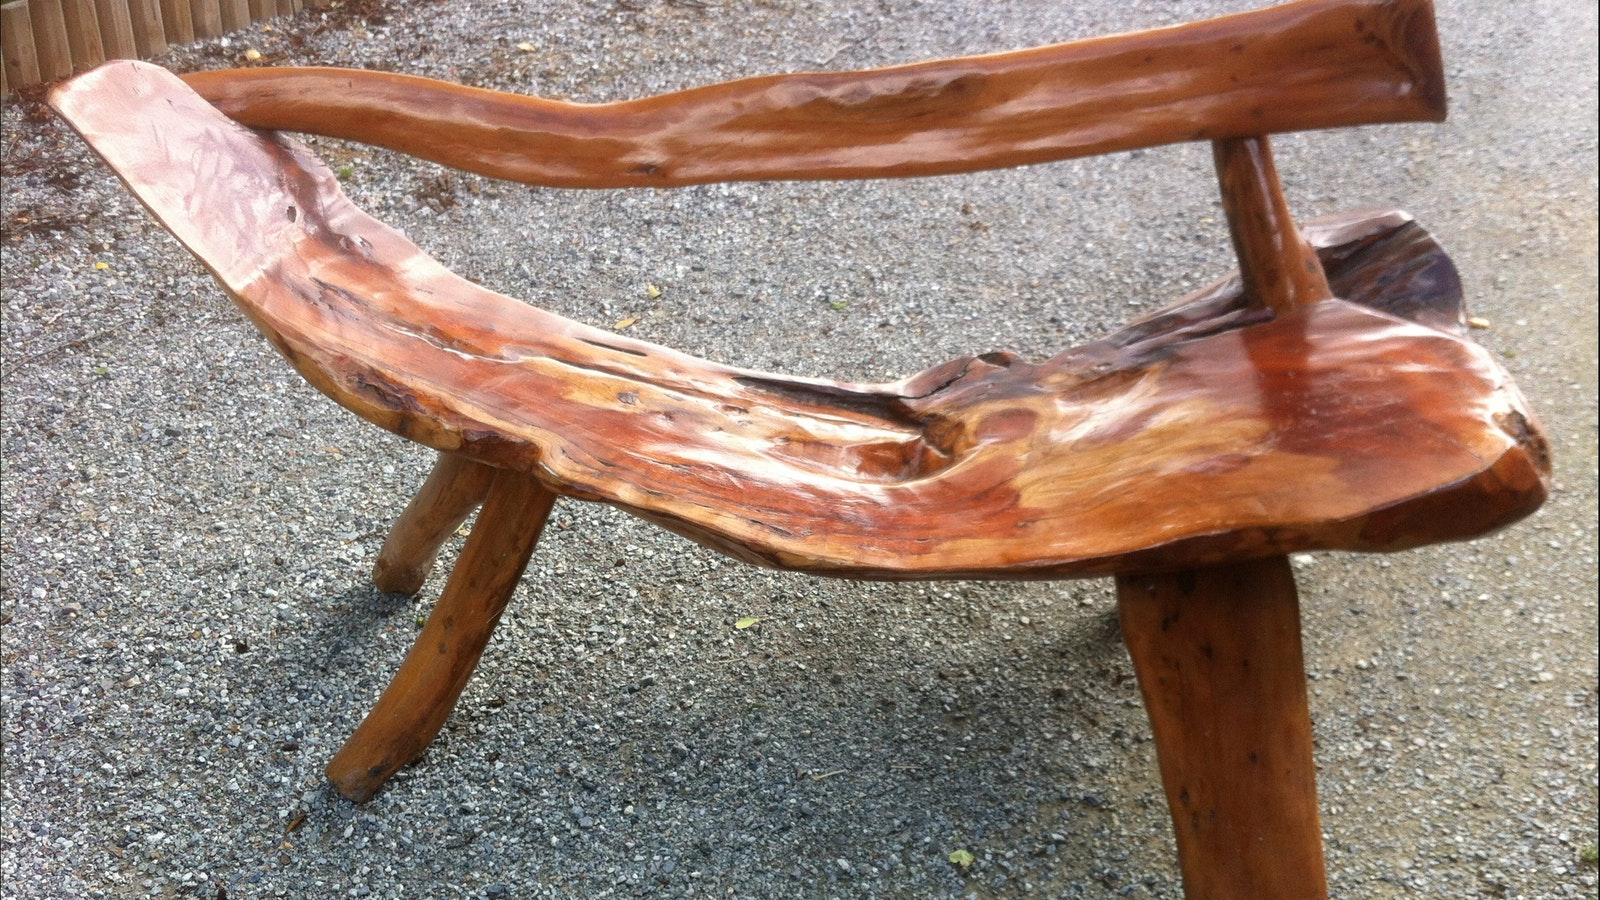 Hand crafted Australian timber furniture